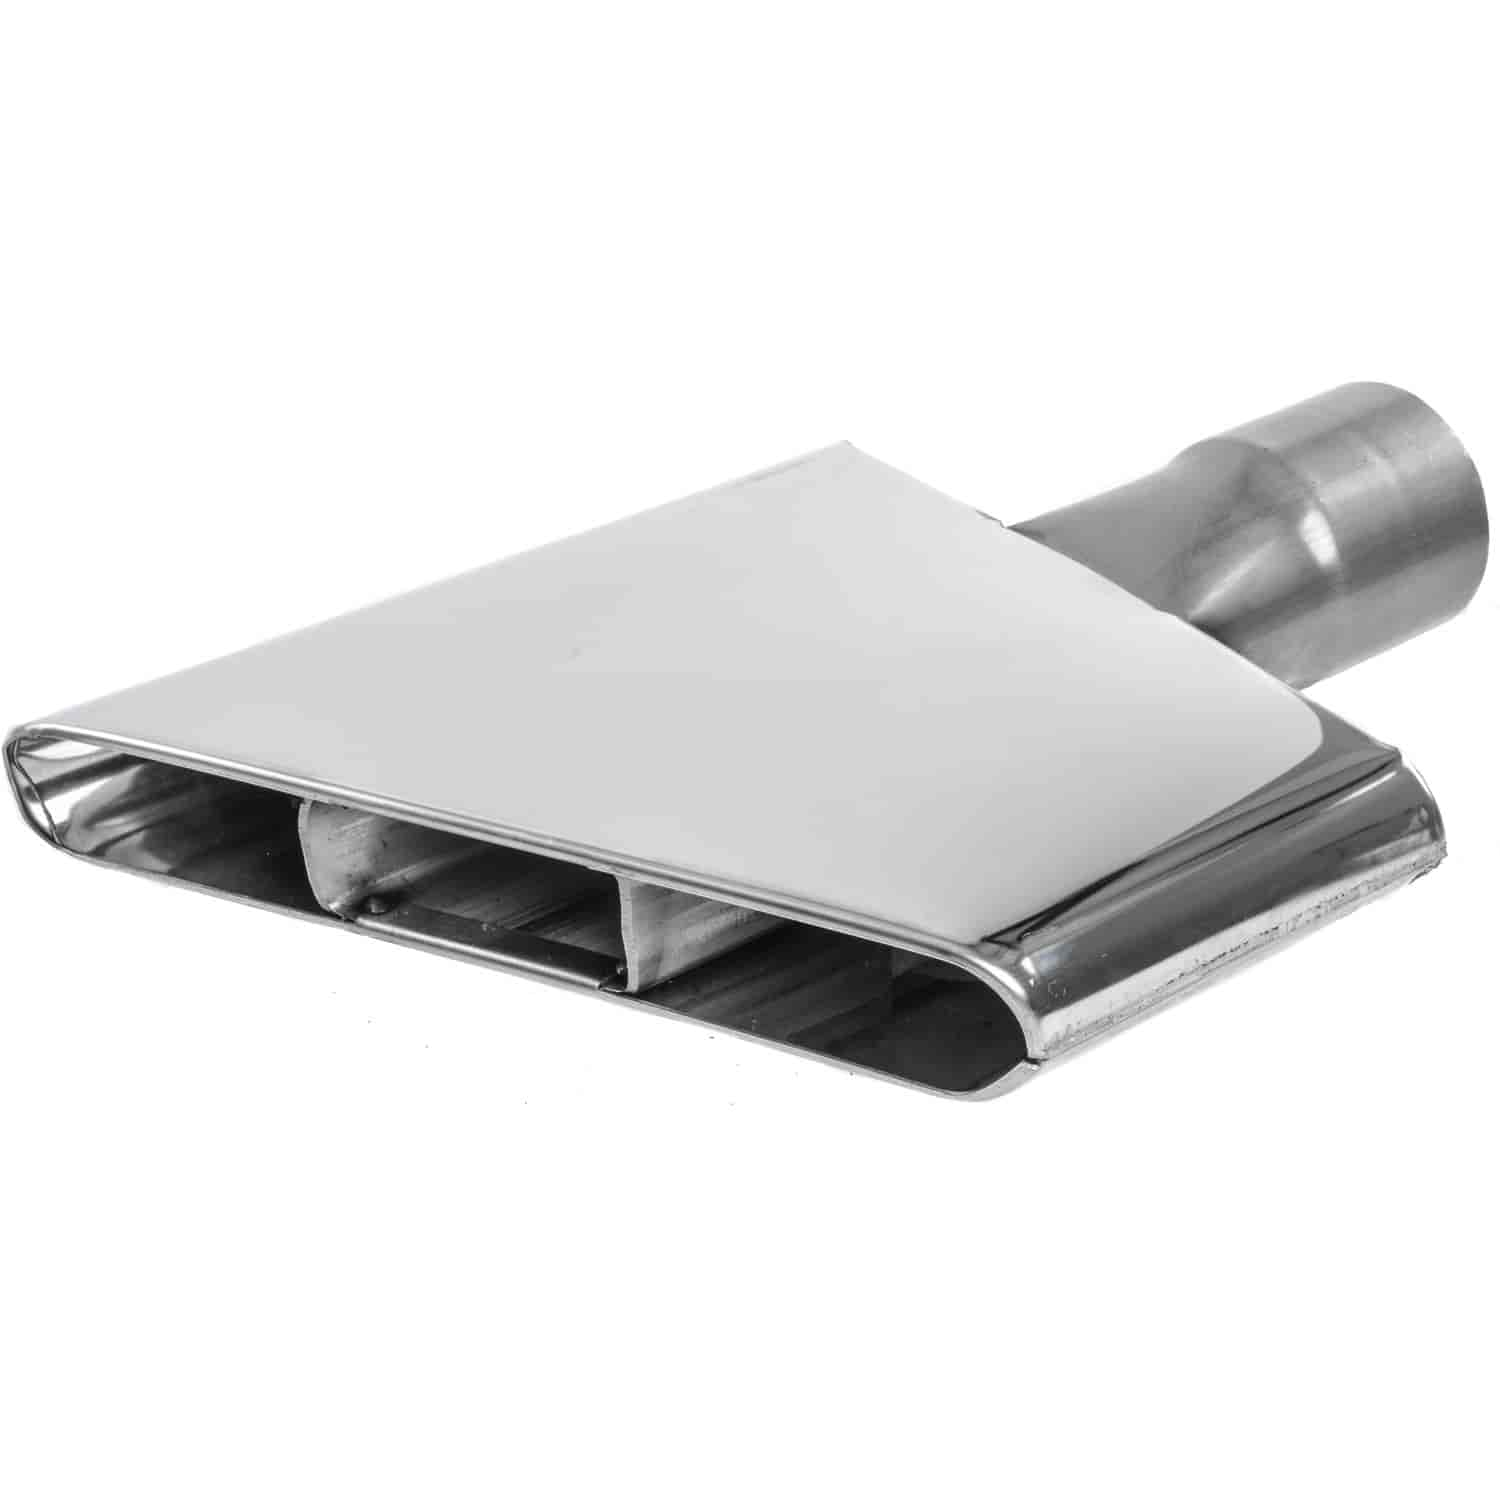 JEGS Performance Products 30972 - JEGS Thunder Exhaust Stainless Steel Exhaust Tips